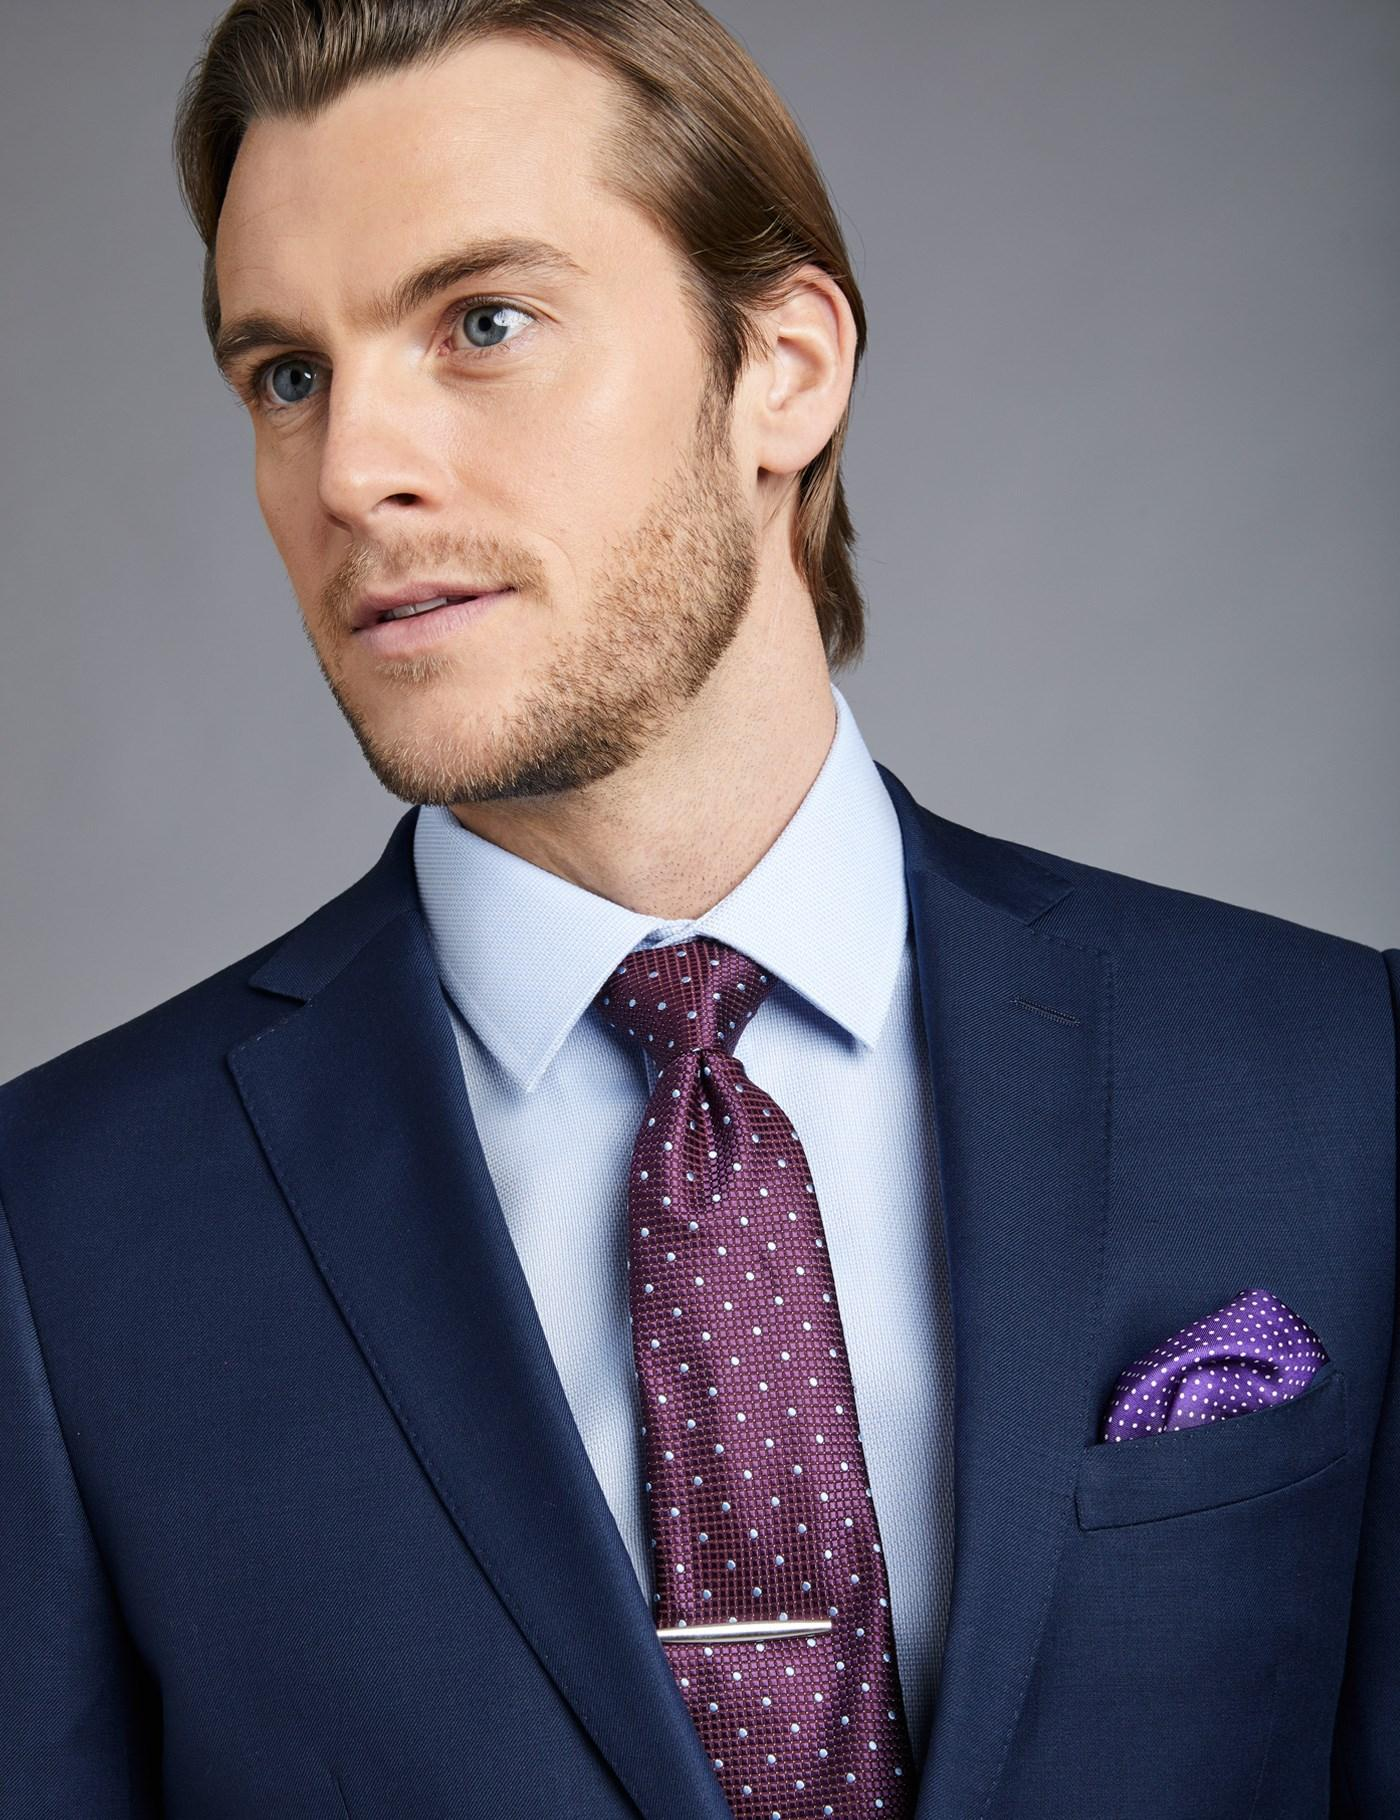 Lyst - Hawes & Curtis Royal Blue Twill Extra Slim Fit Suit